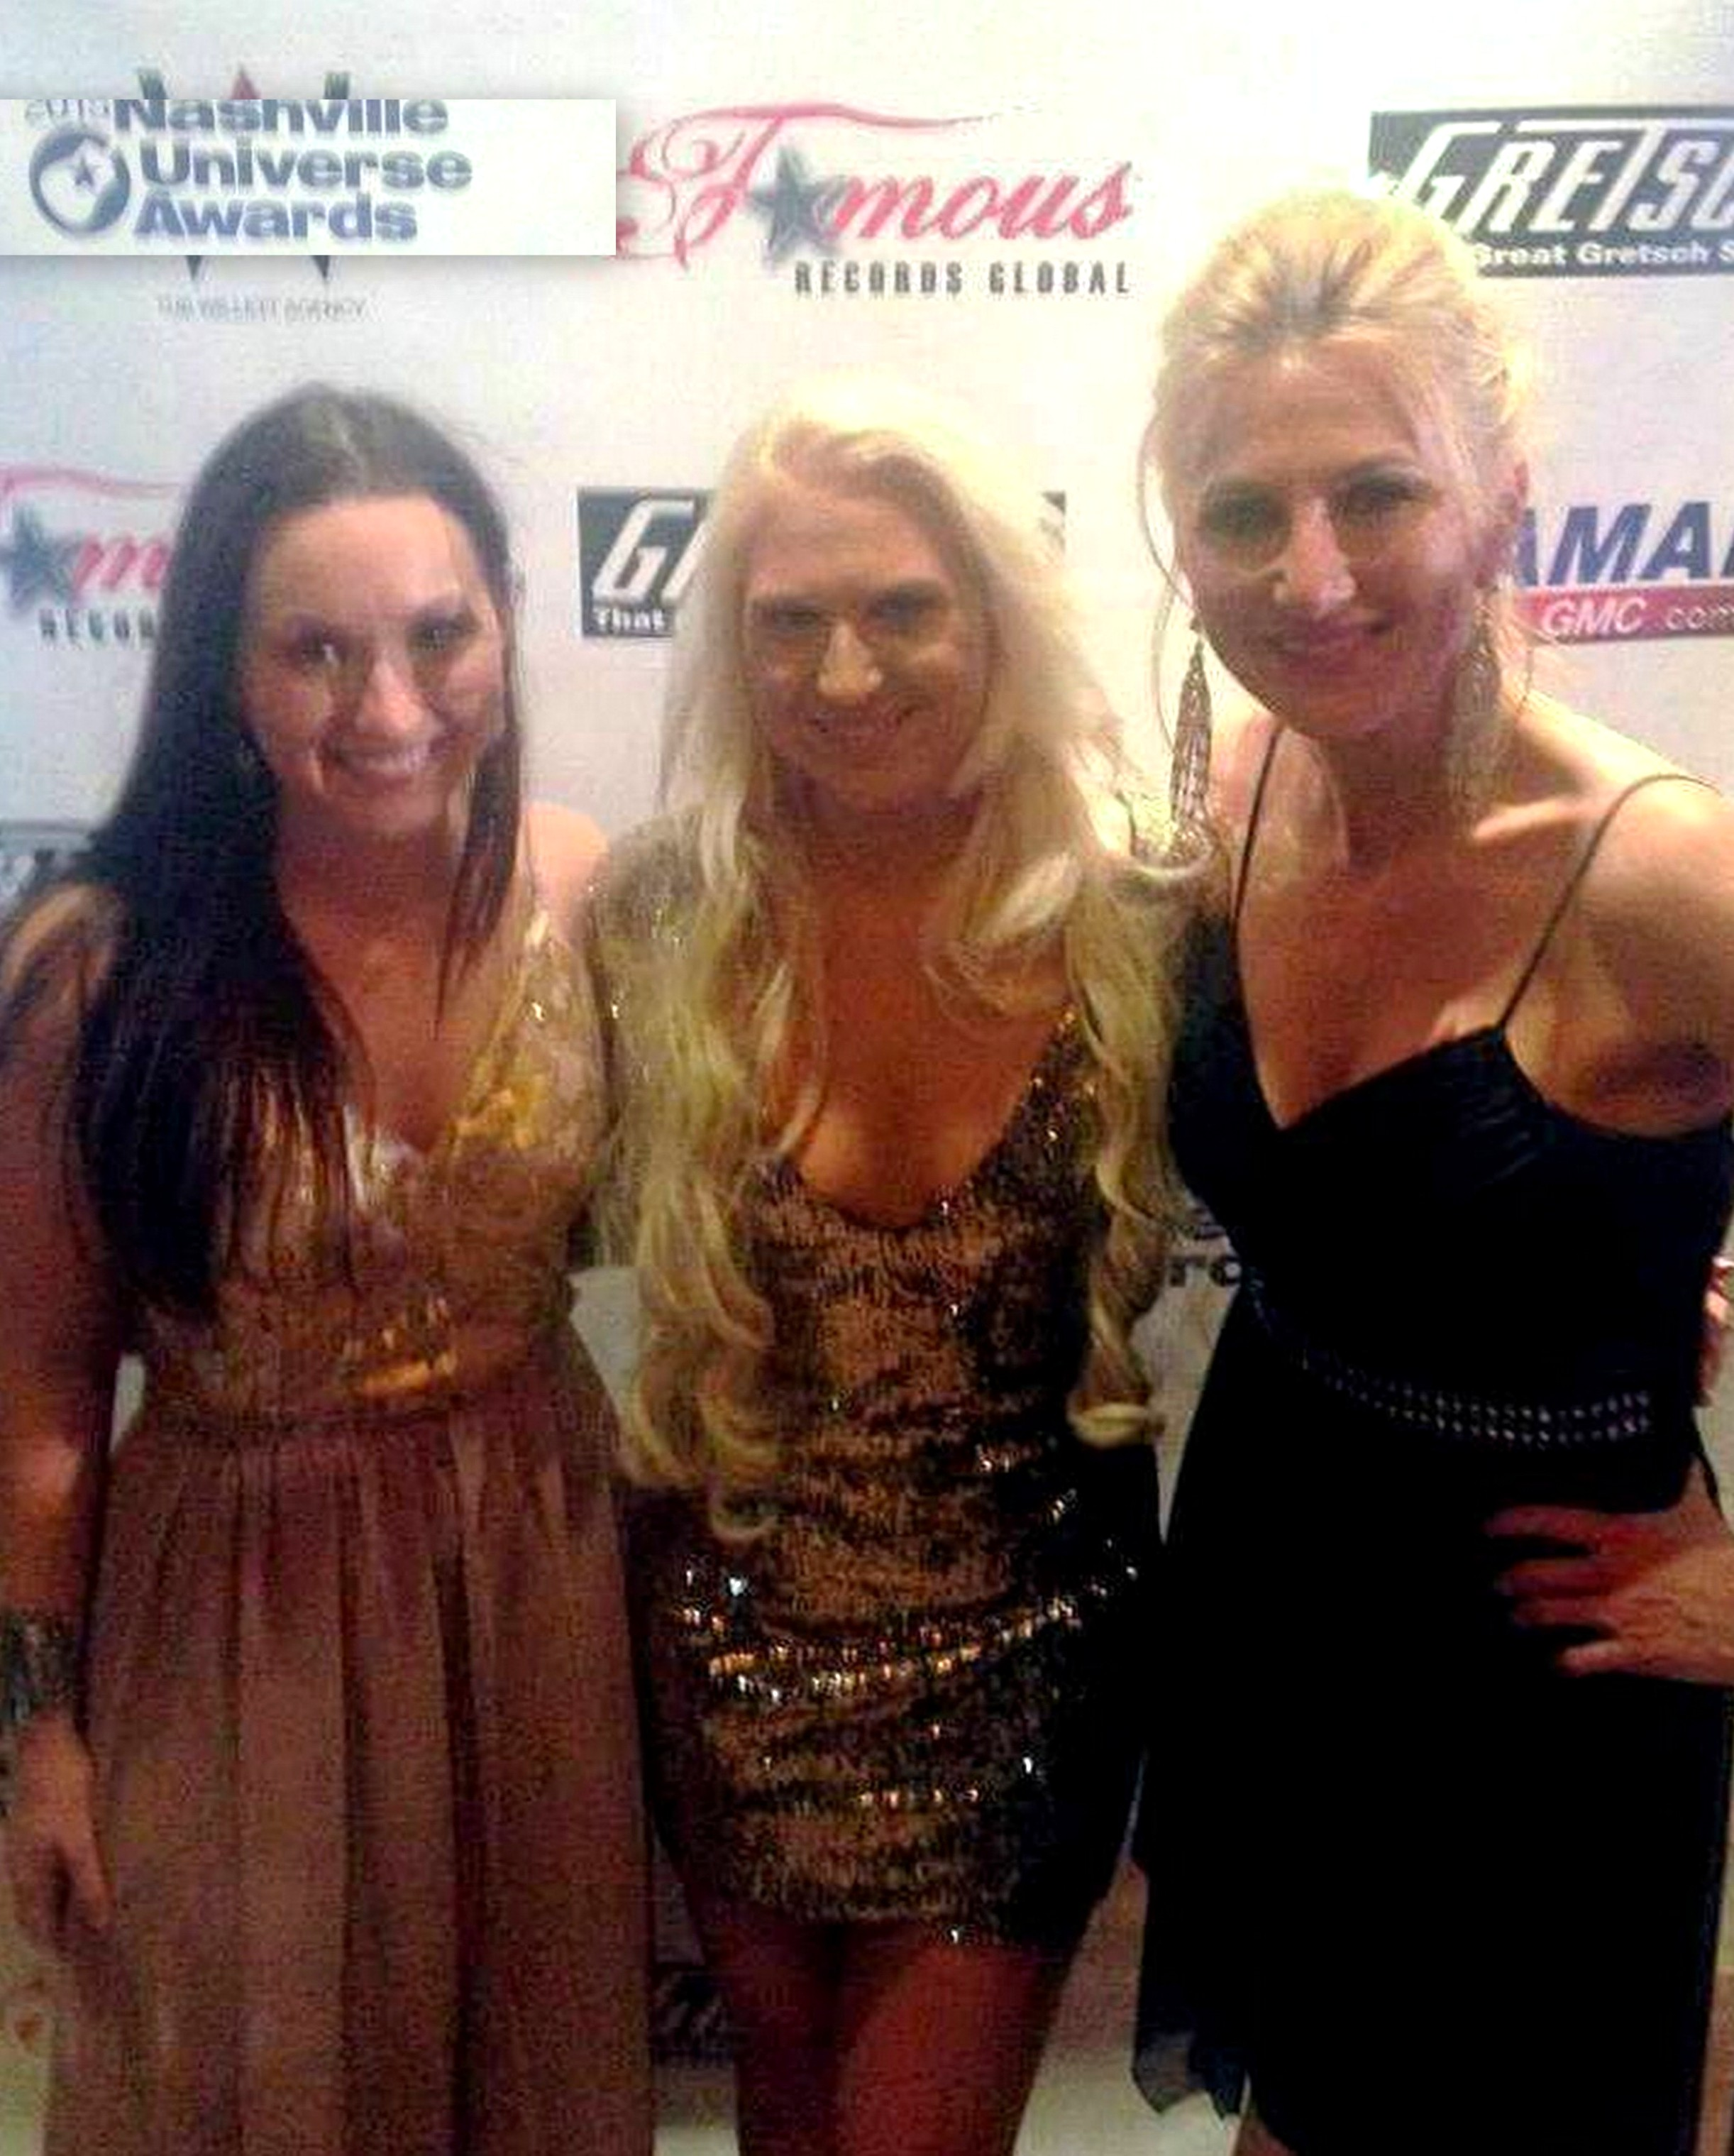 Nashville Universe Awards 2steelgirls and Melissa Ramski